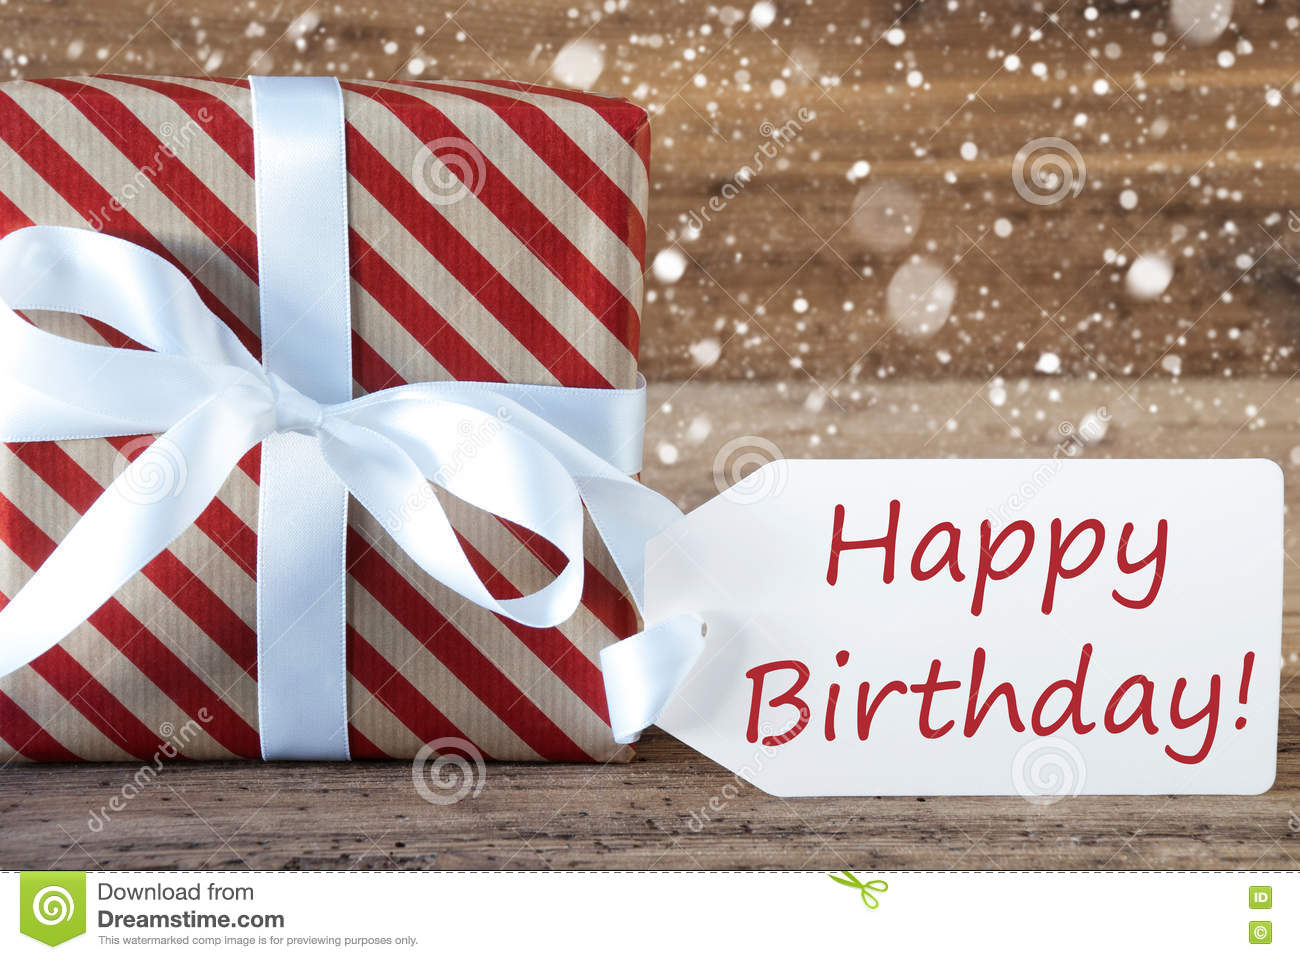 Present With Snowflakes Text Happy Birthday Stock Photo Image Of Card Festive 79271552